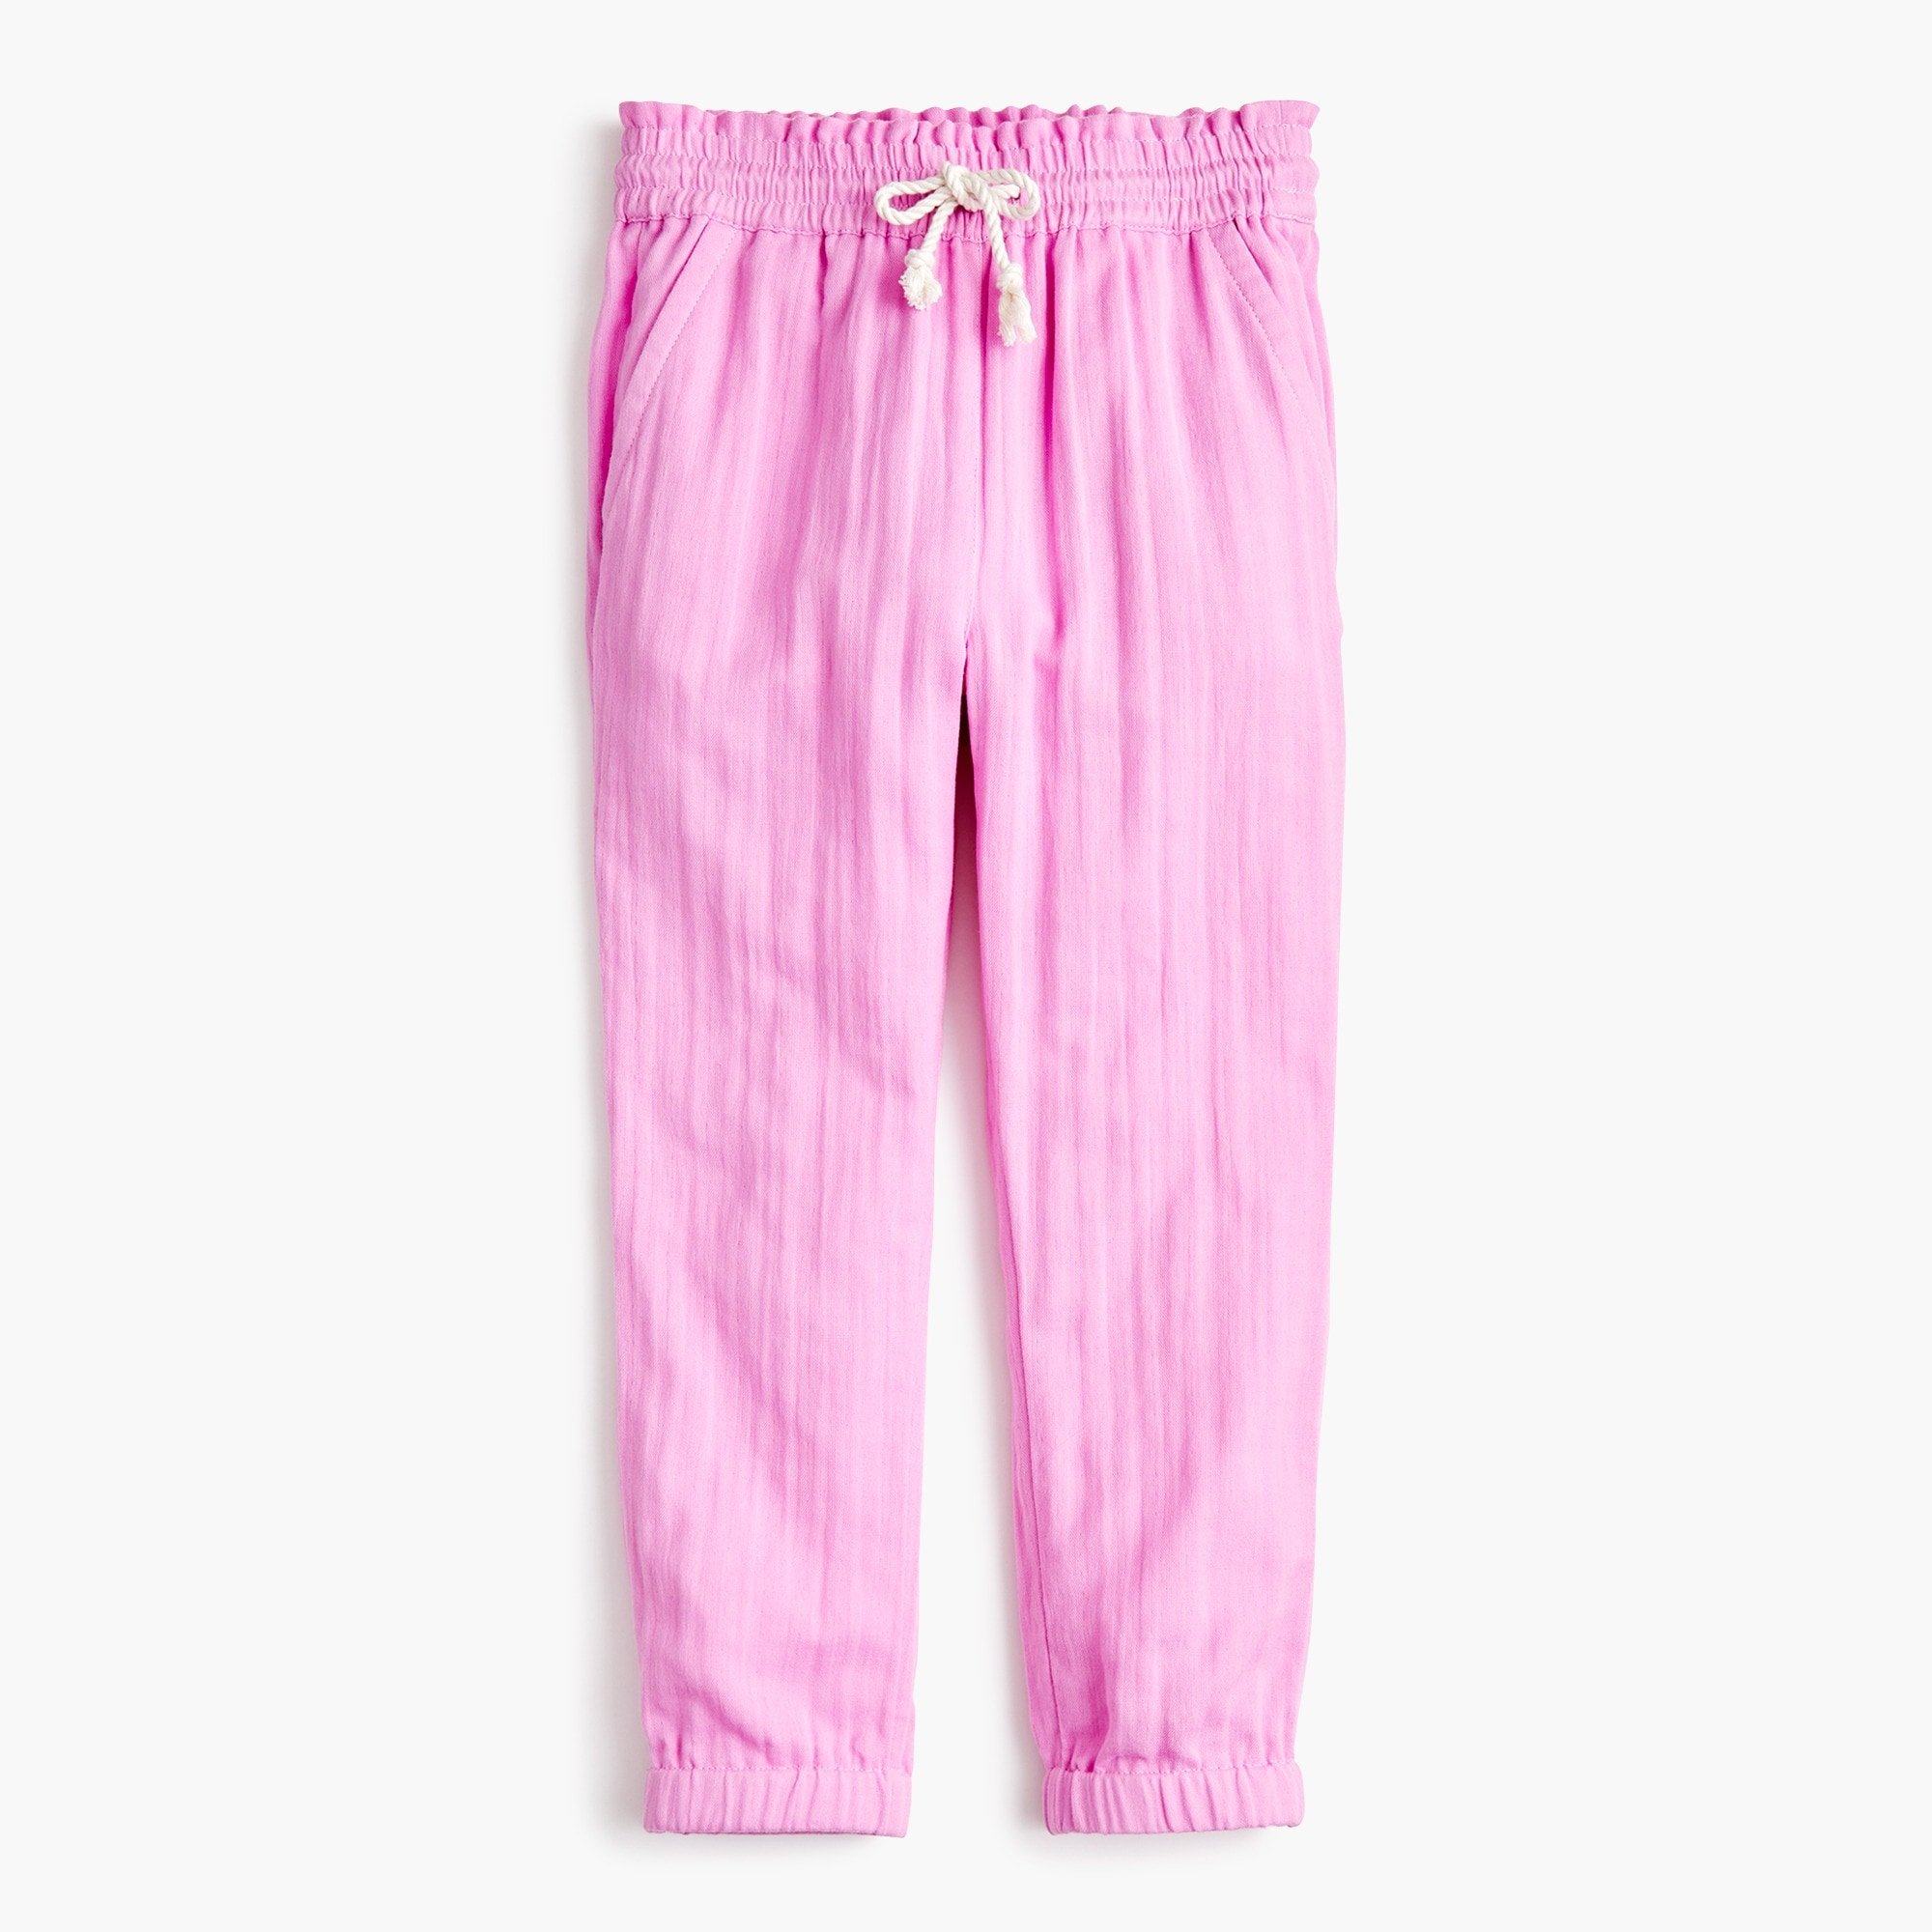 Girls' drawstring pant